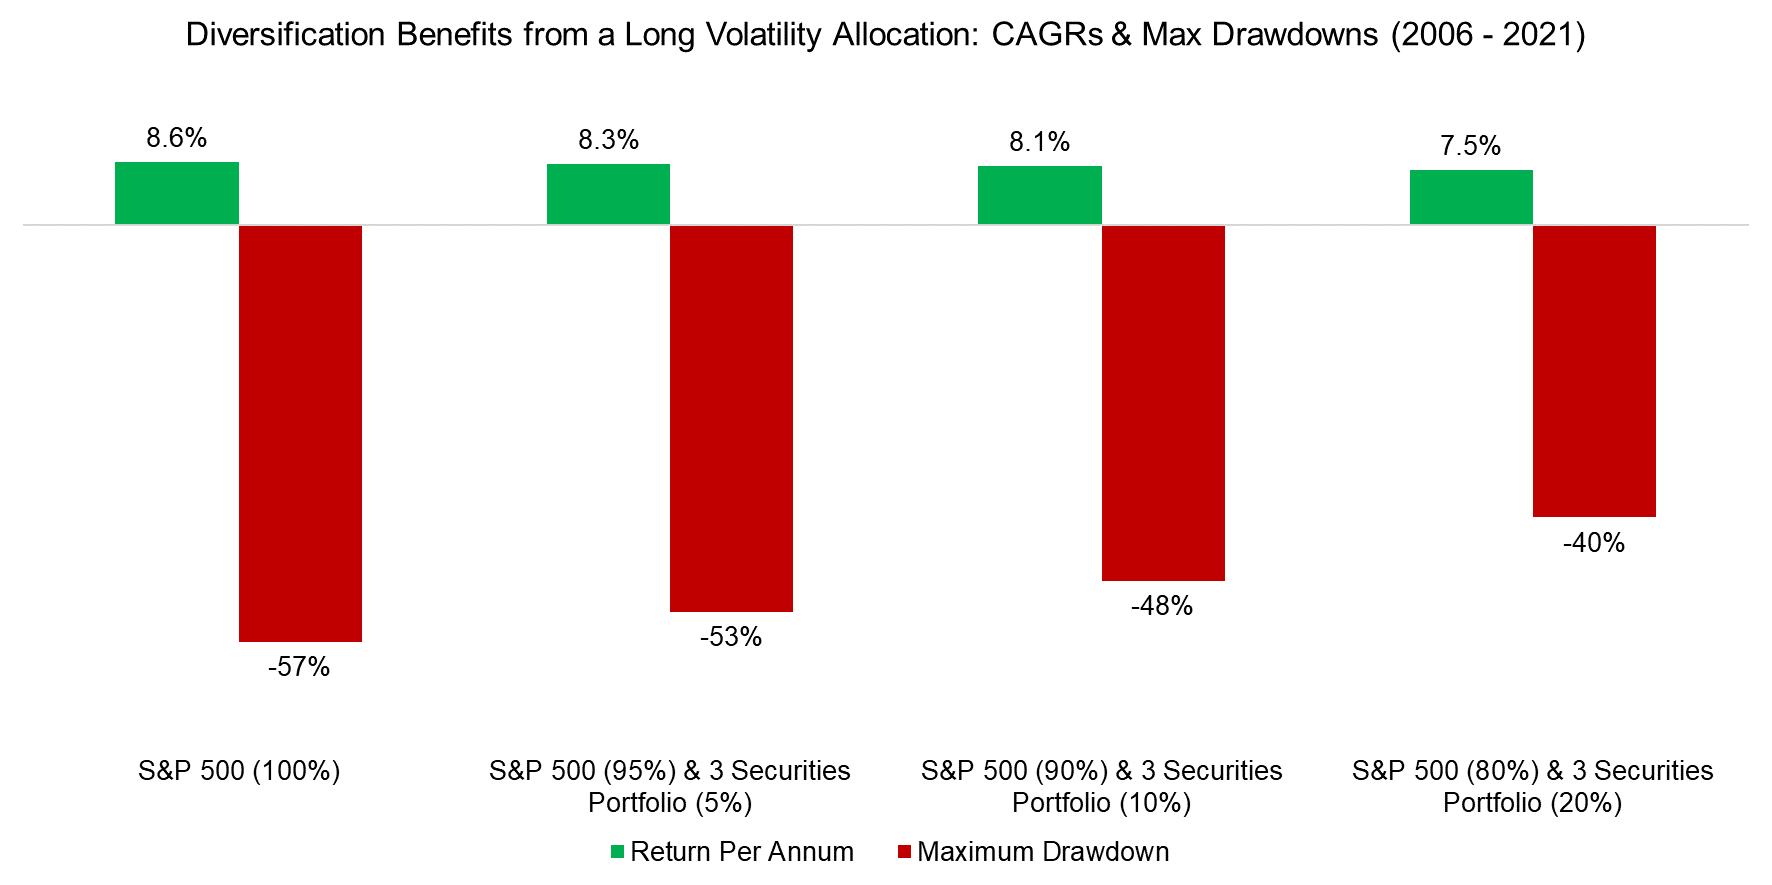 Diversification Benefits from a Long Volatility Allocation CAGRs & Max Drawdowns